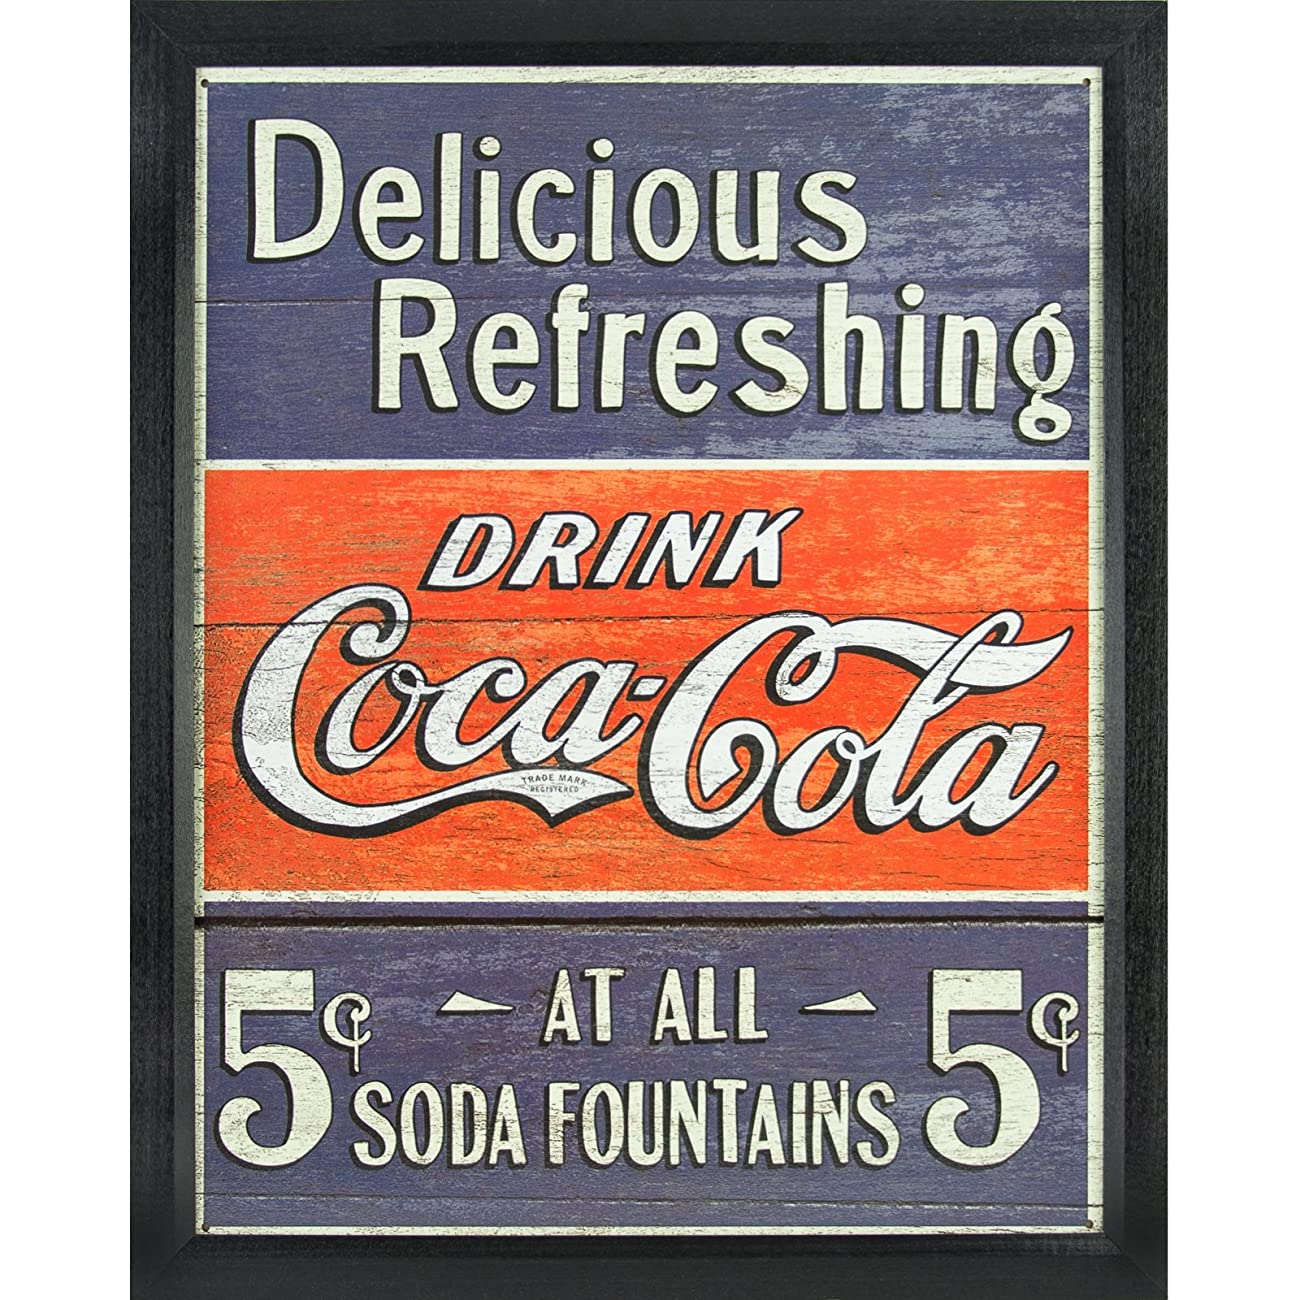 Vintage Delicious Refreshing Coca-Cola Tin Sign, 12.5-Inch by 16-Inch, Distressed Appearance, Framed in .84-Inch Wide Black Picture Frame 0